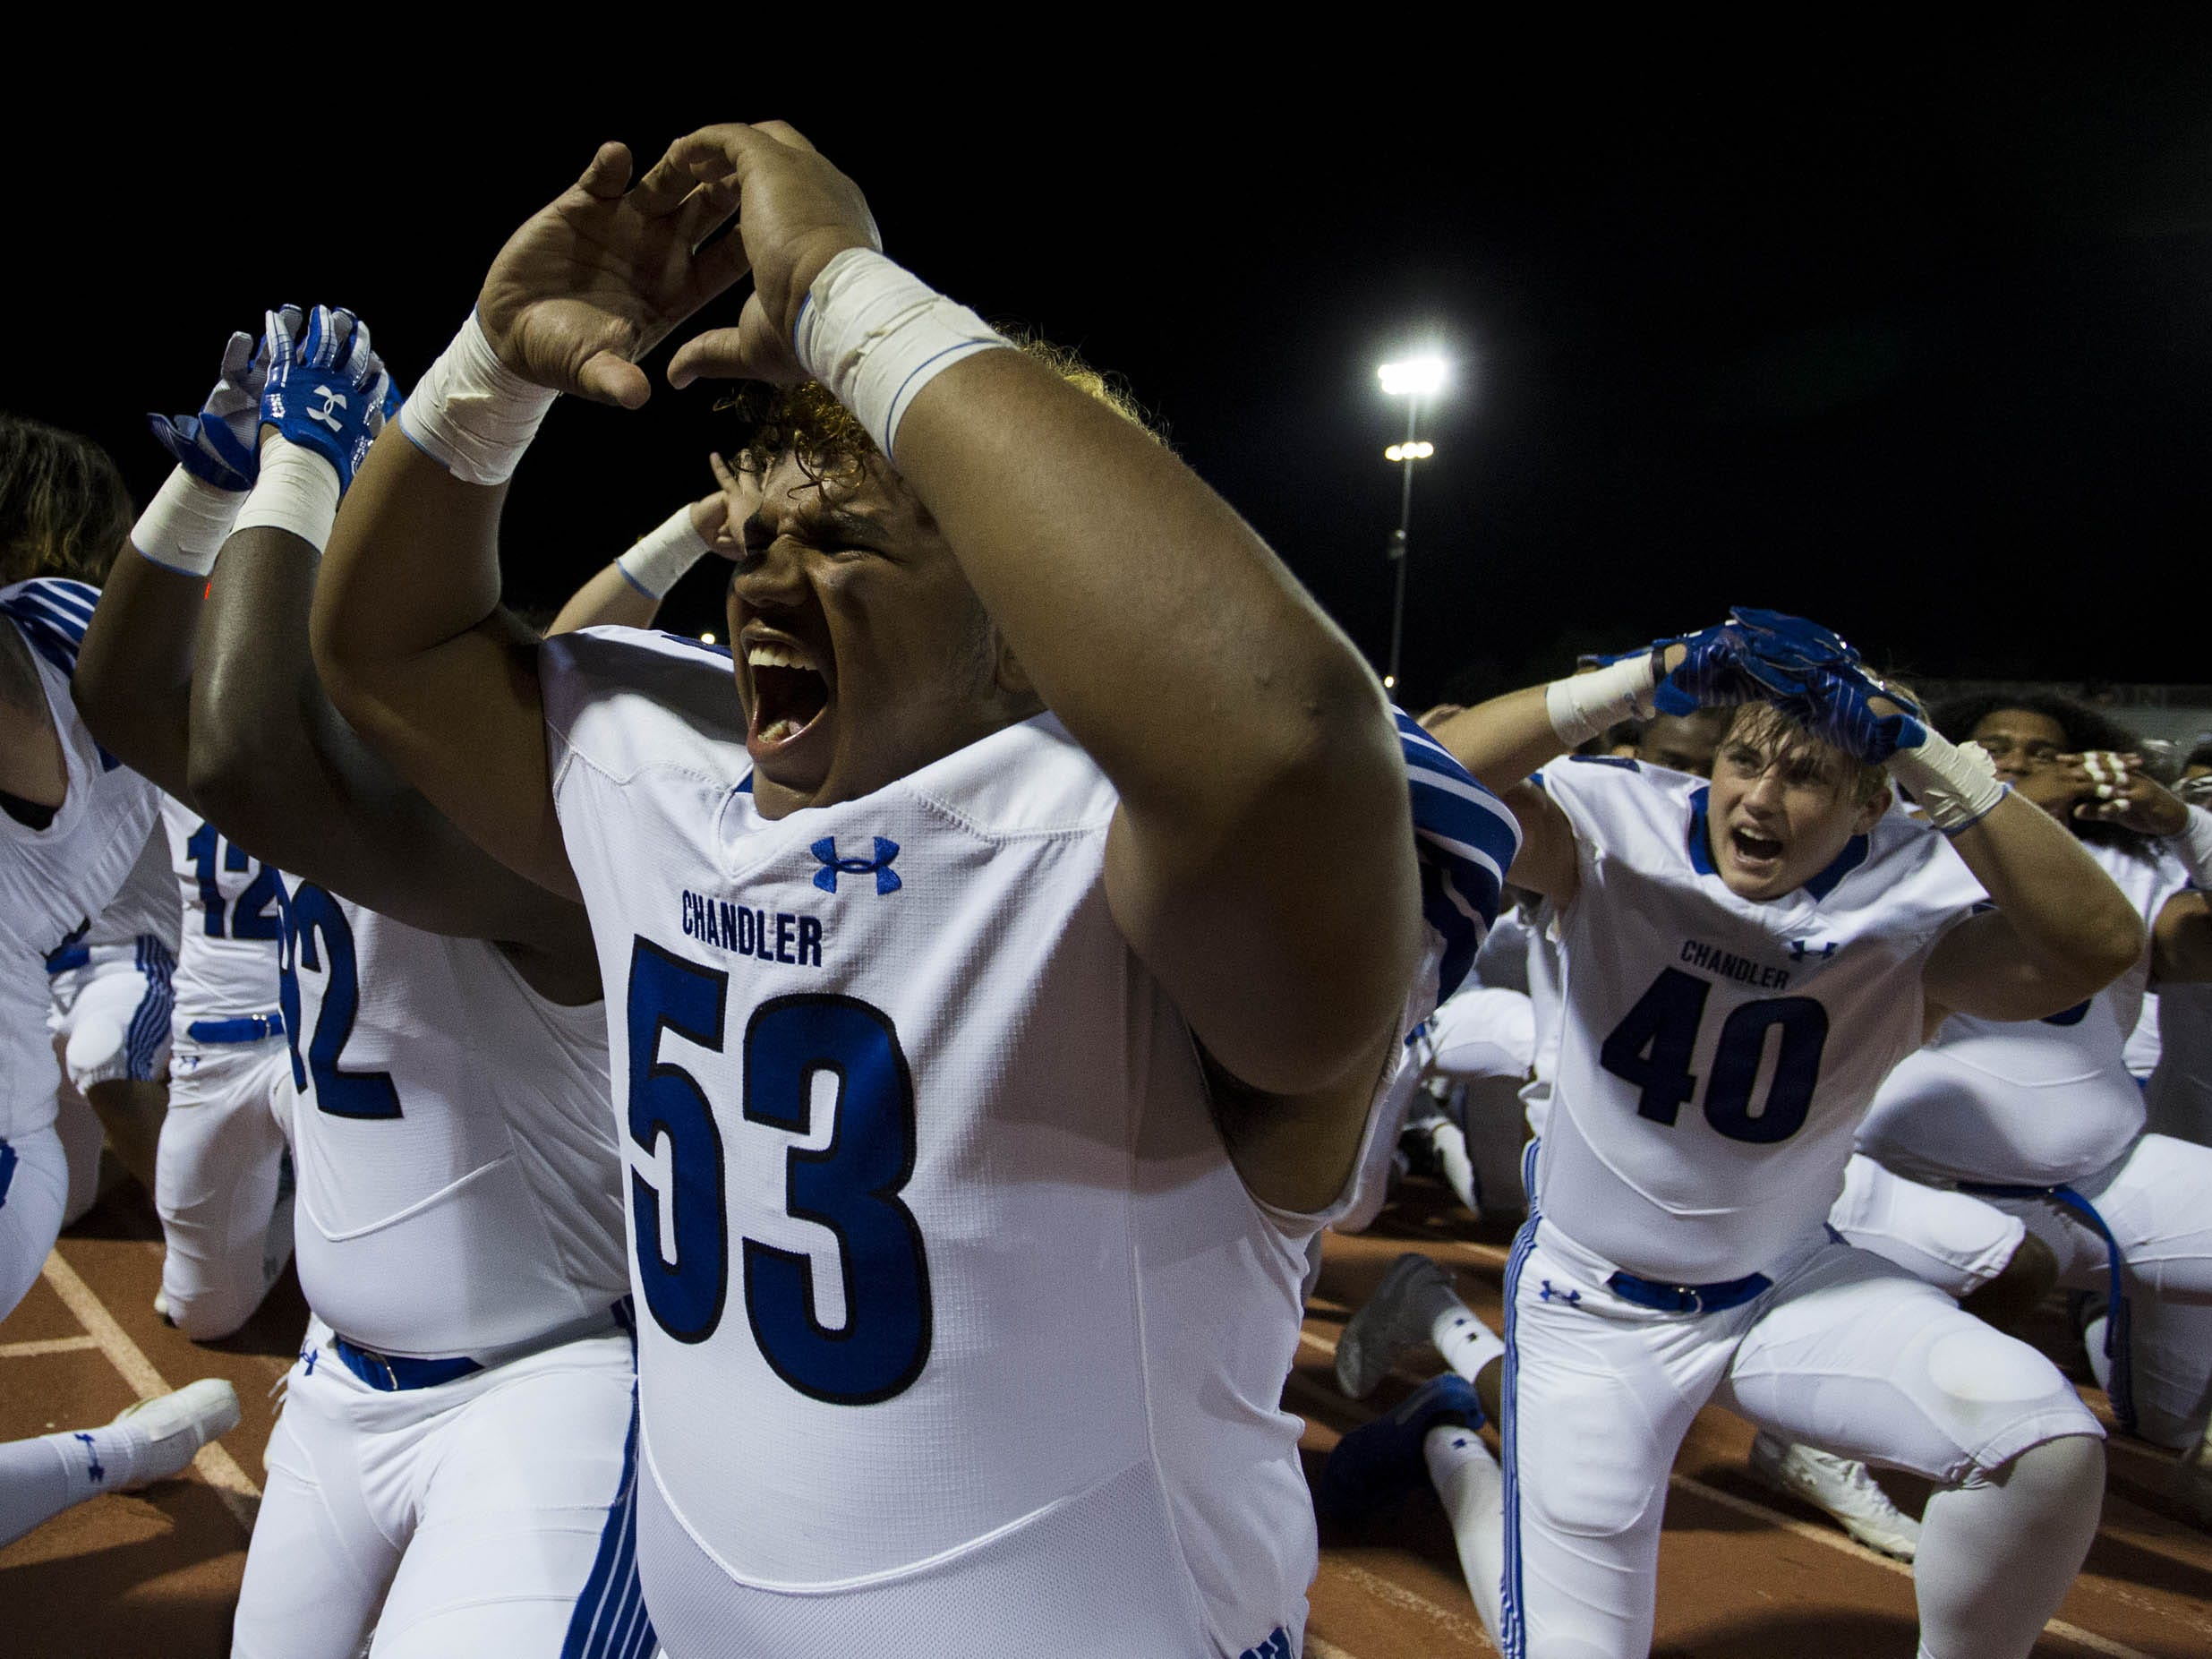 Chandler High players do the Haka before their game against crosstown rivals the Hamilton Huskies in Chandler, Friday, Oct. 26, 2018. #azhsfb